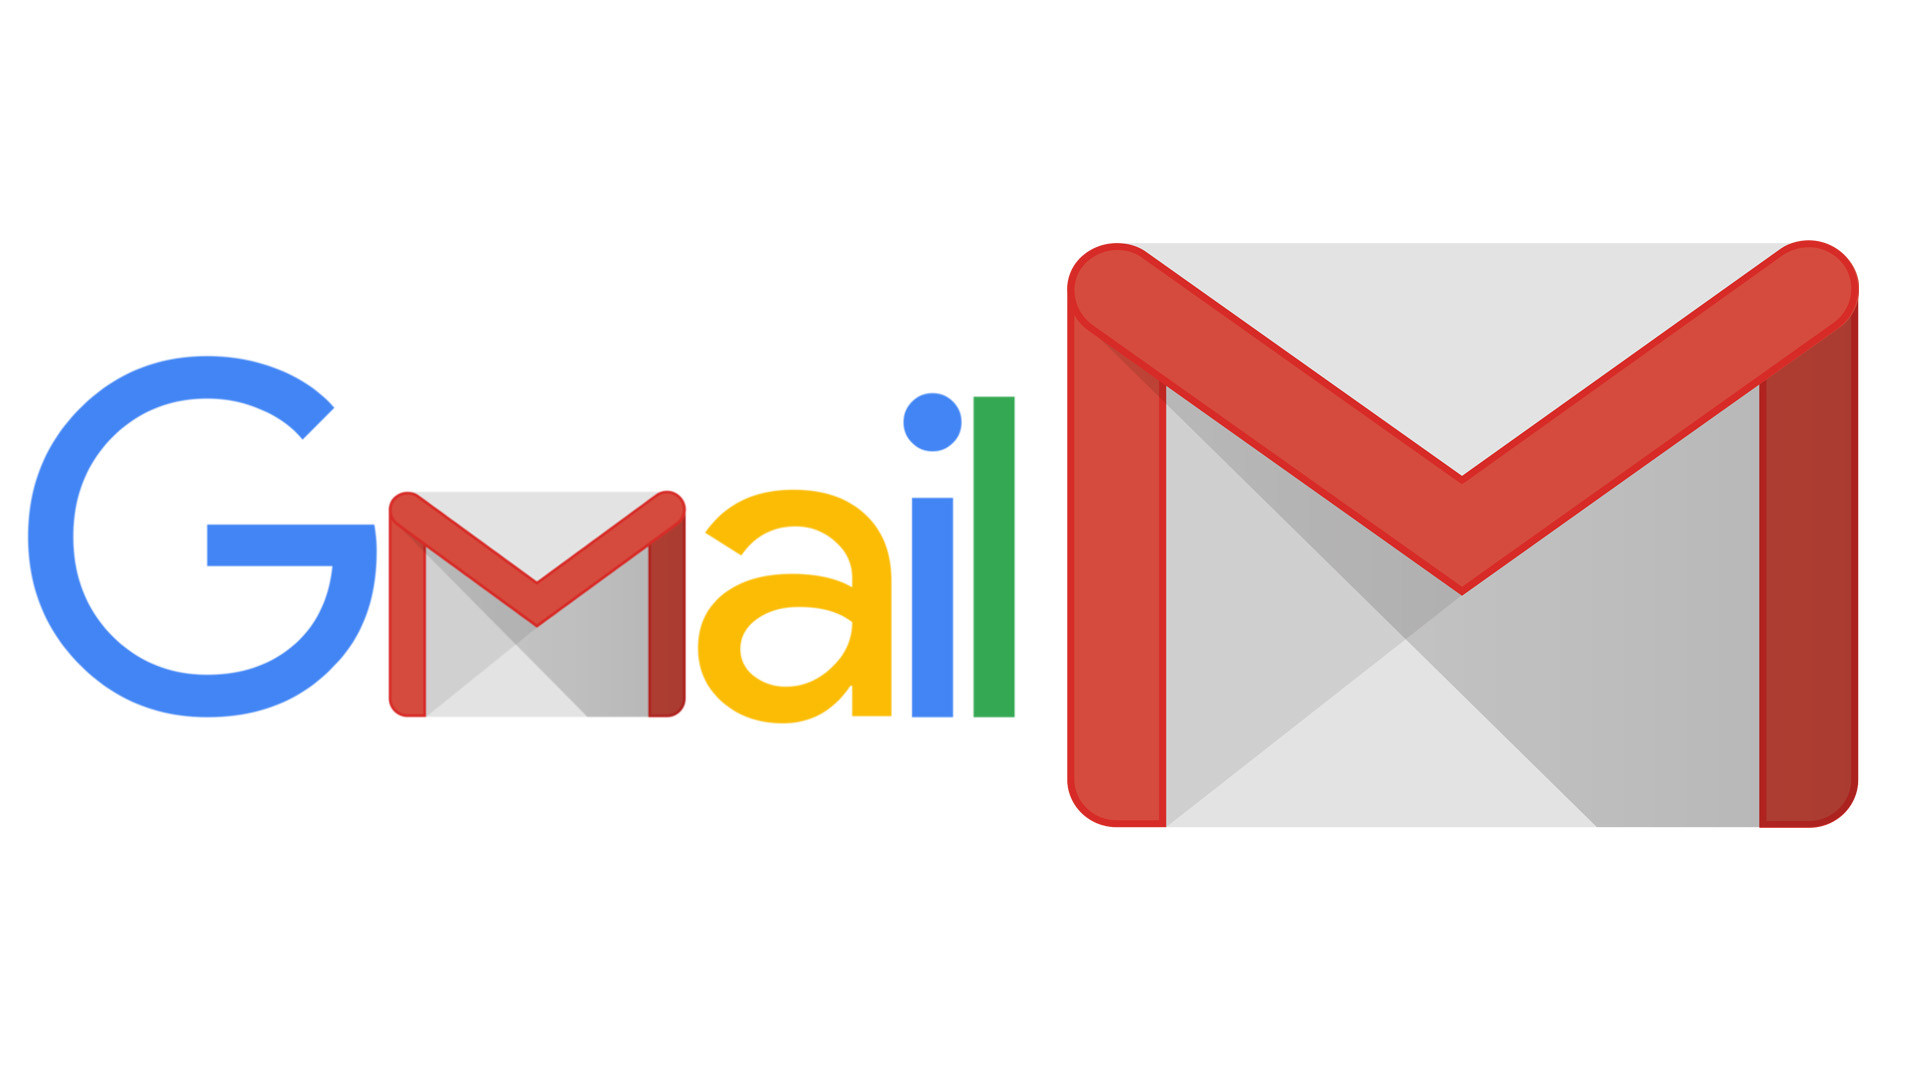 Meaning Gmail logo and symbol.